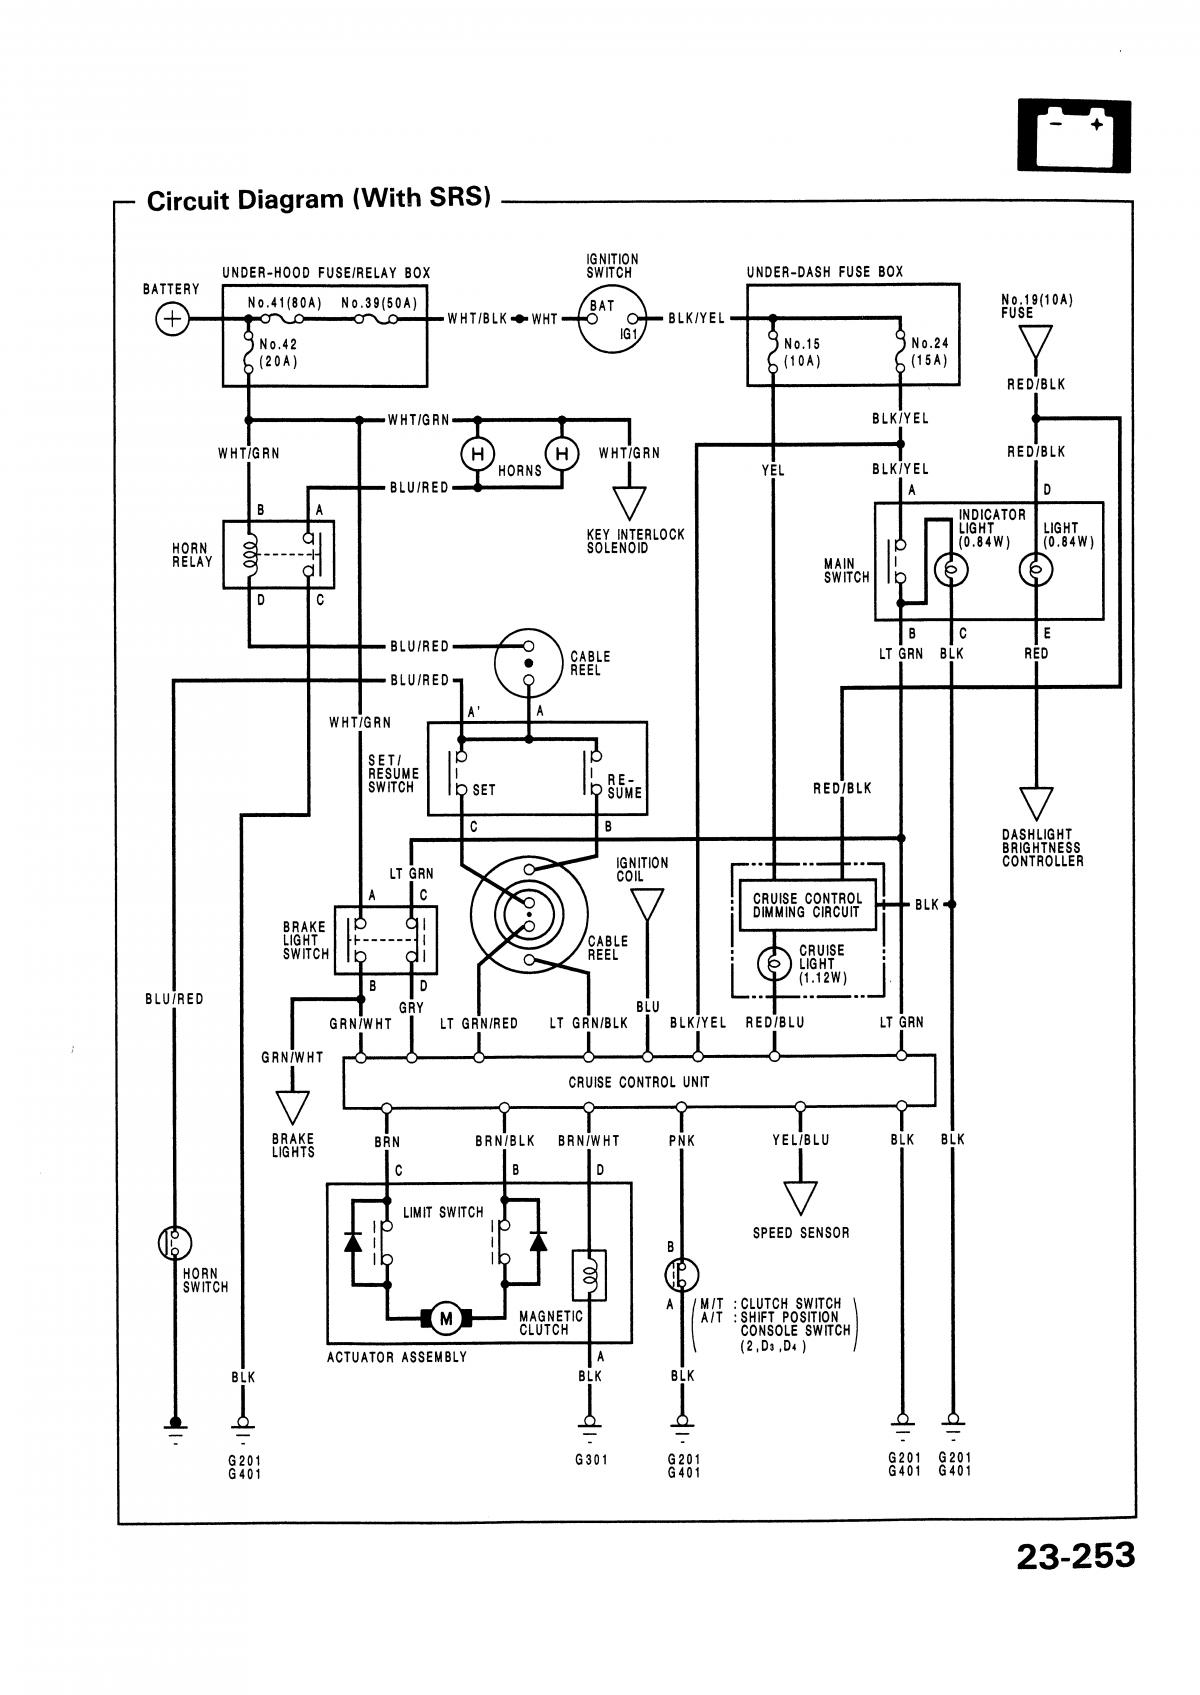 Jdm Tcs Wiring Diagram Figure 5 Abs, Jdm, Free Engine